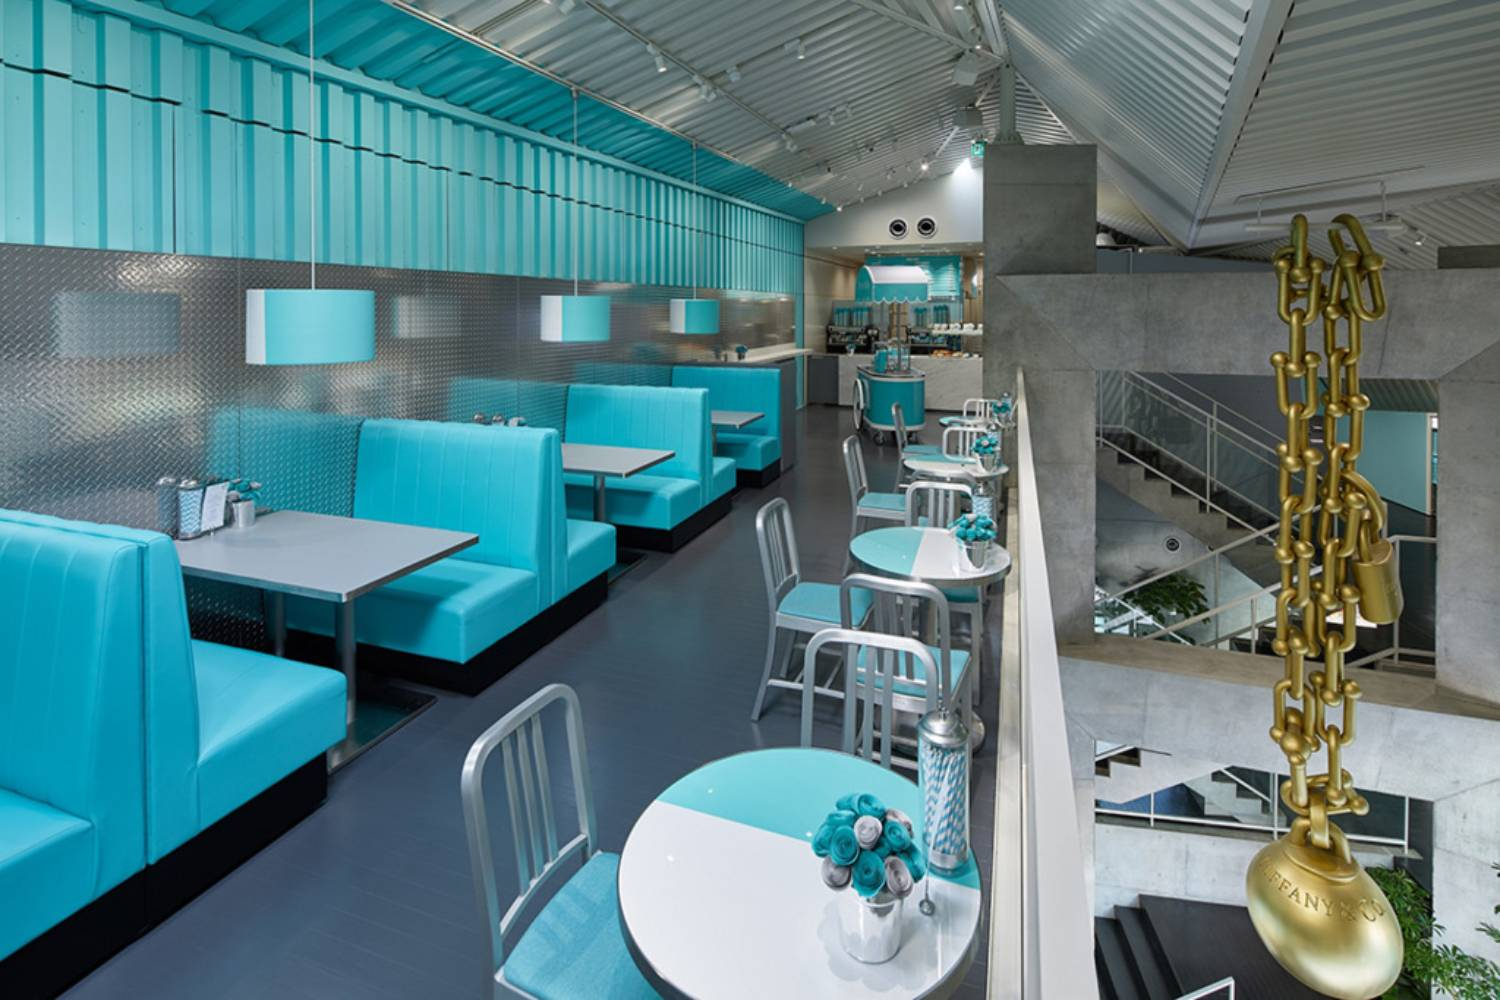 New Tiffany Co Concept Store Open In Harajuku Tokyo Asia Trend